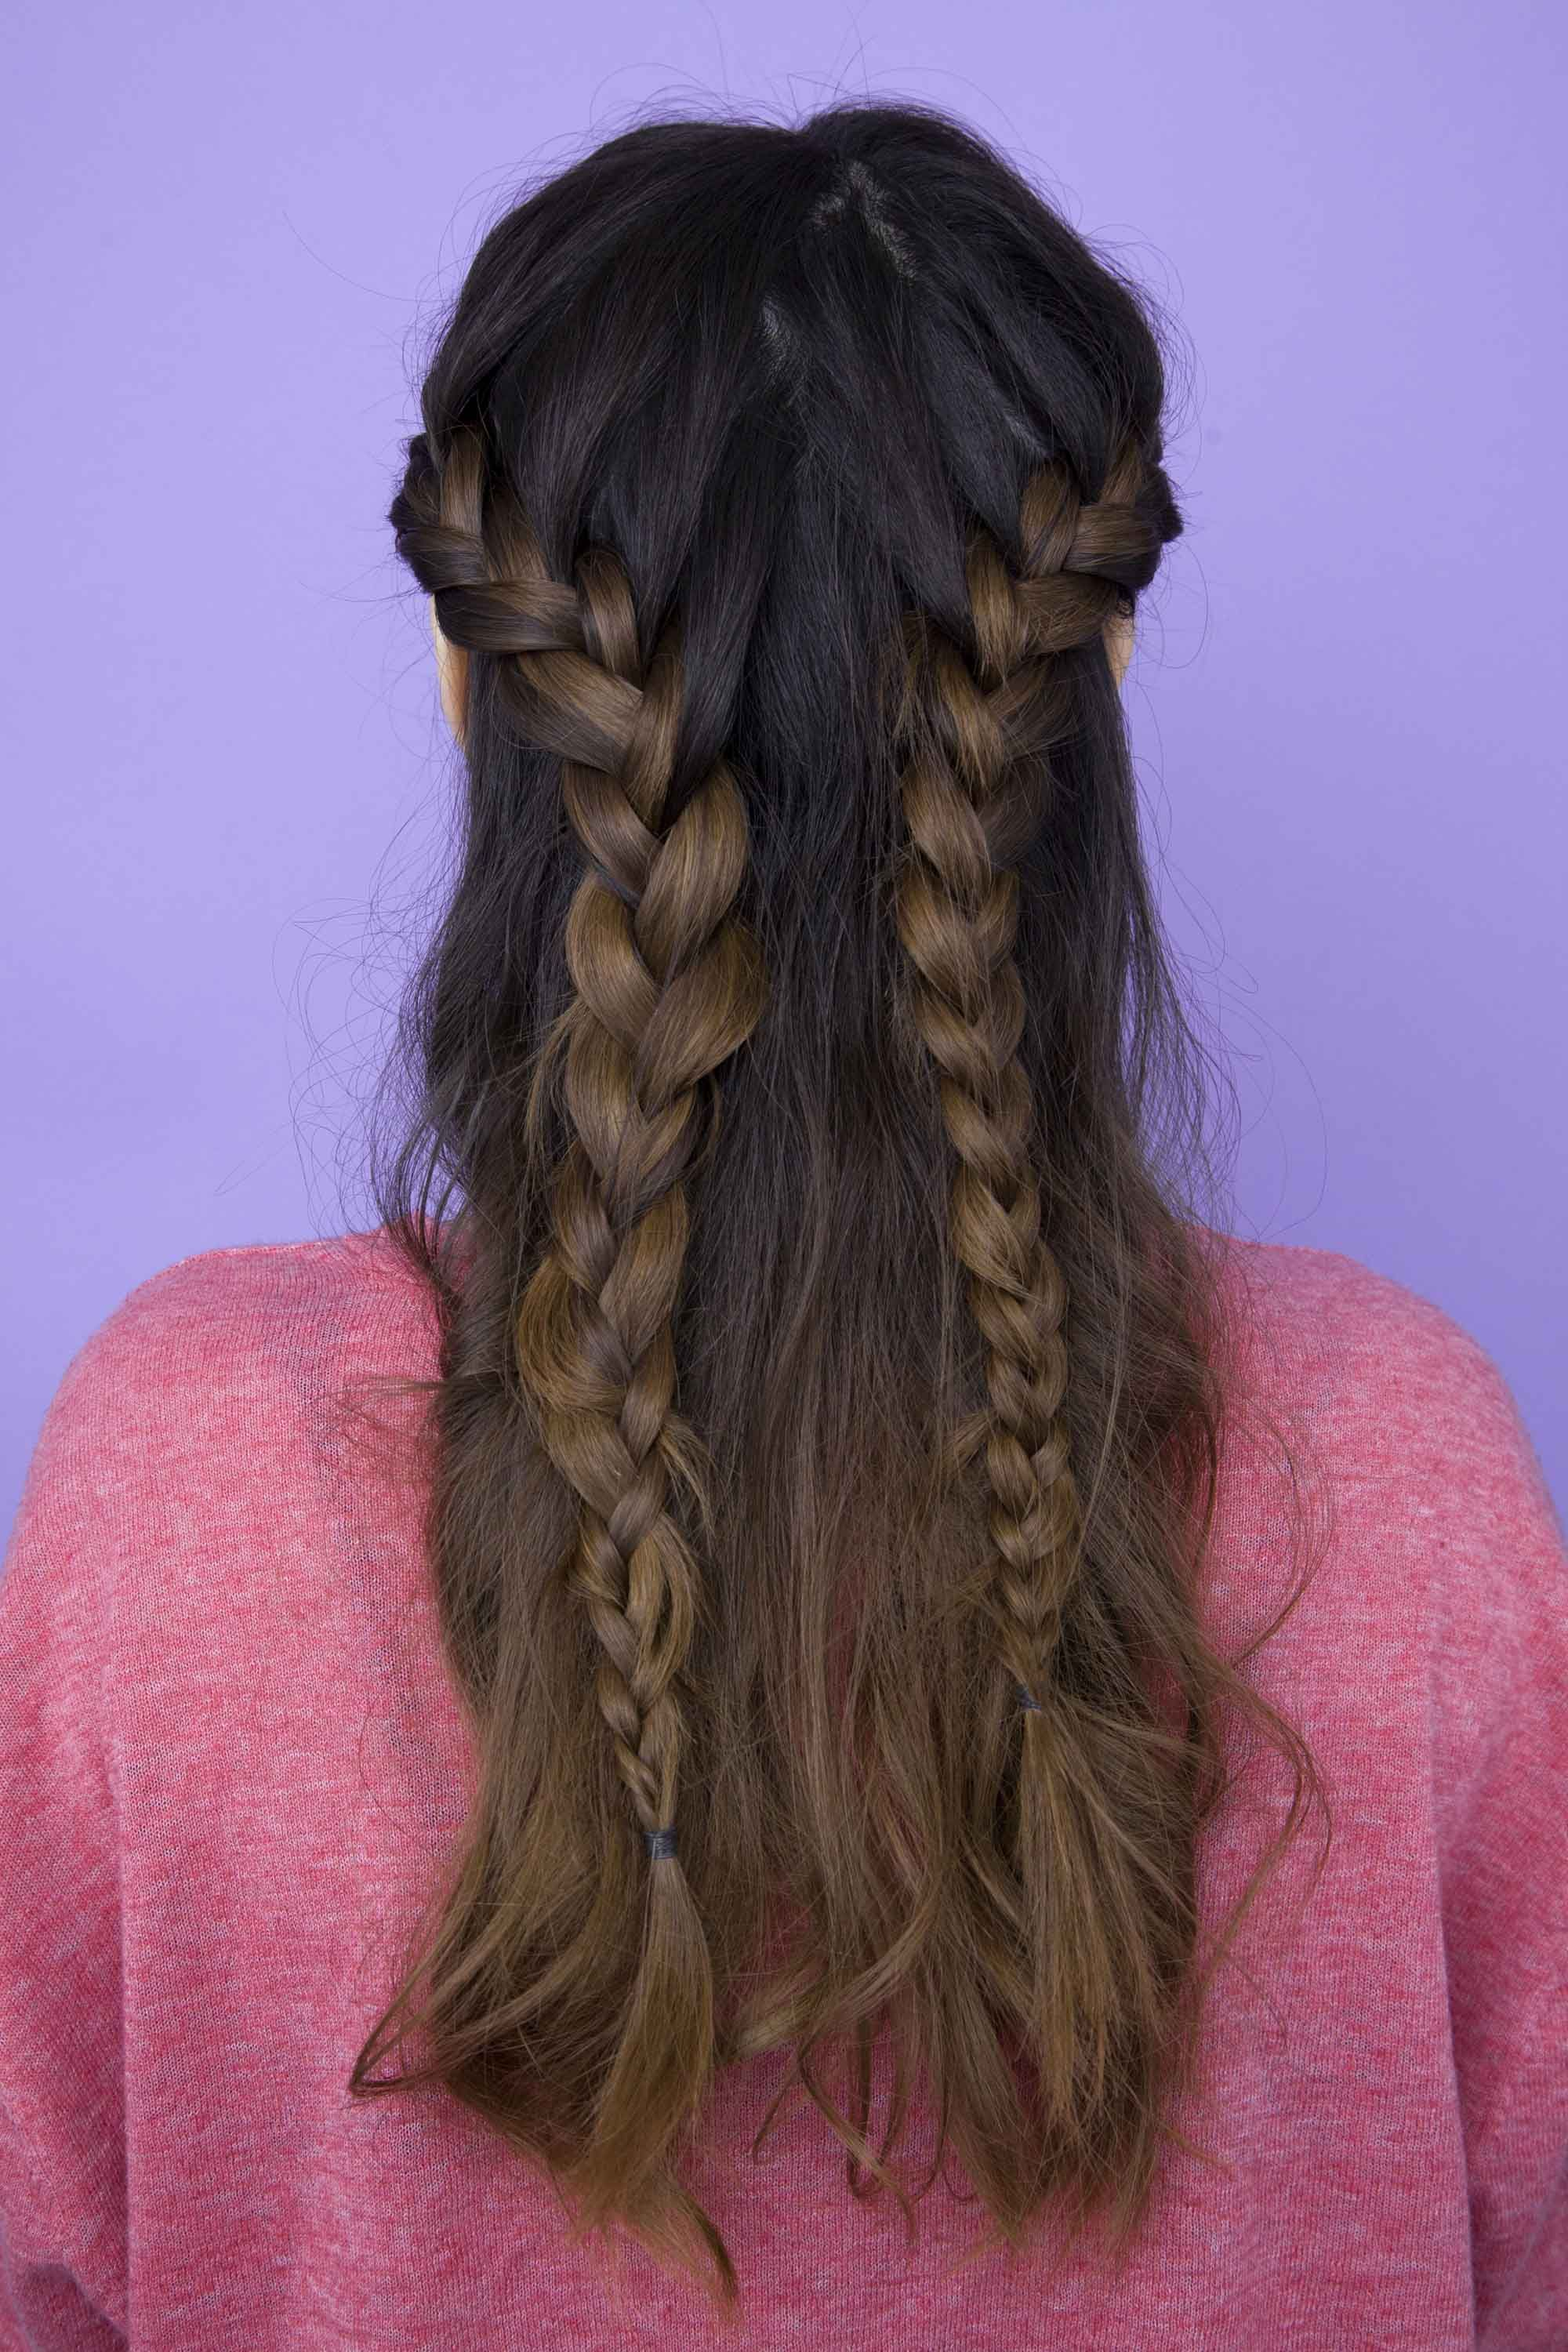 French Braid Hairstyles Brilliant Unusual And Stunning French Braid Hairstyles To Try Now  Hair